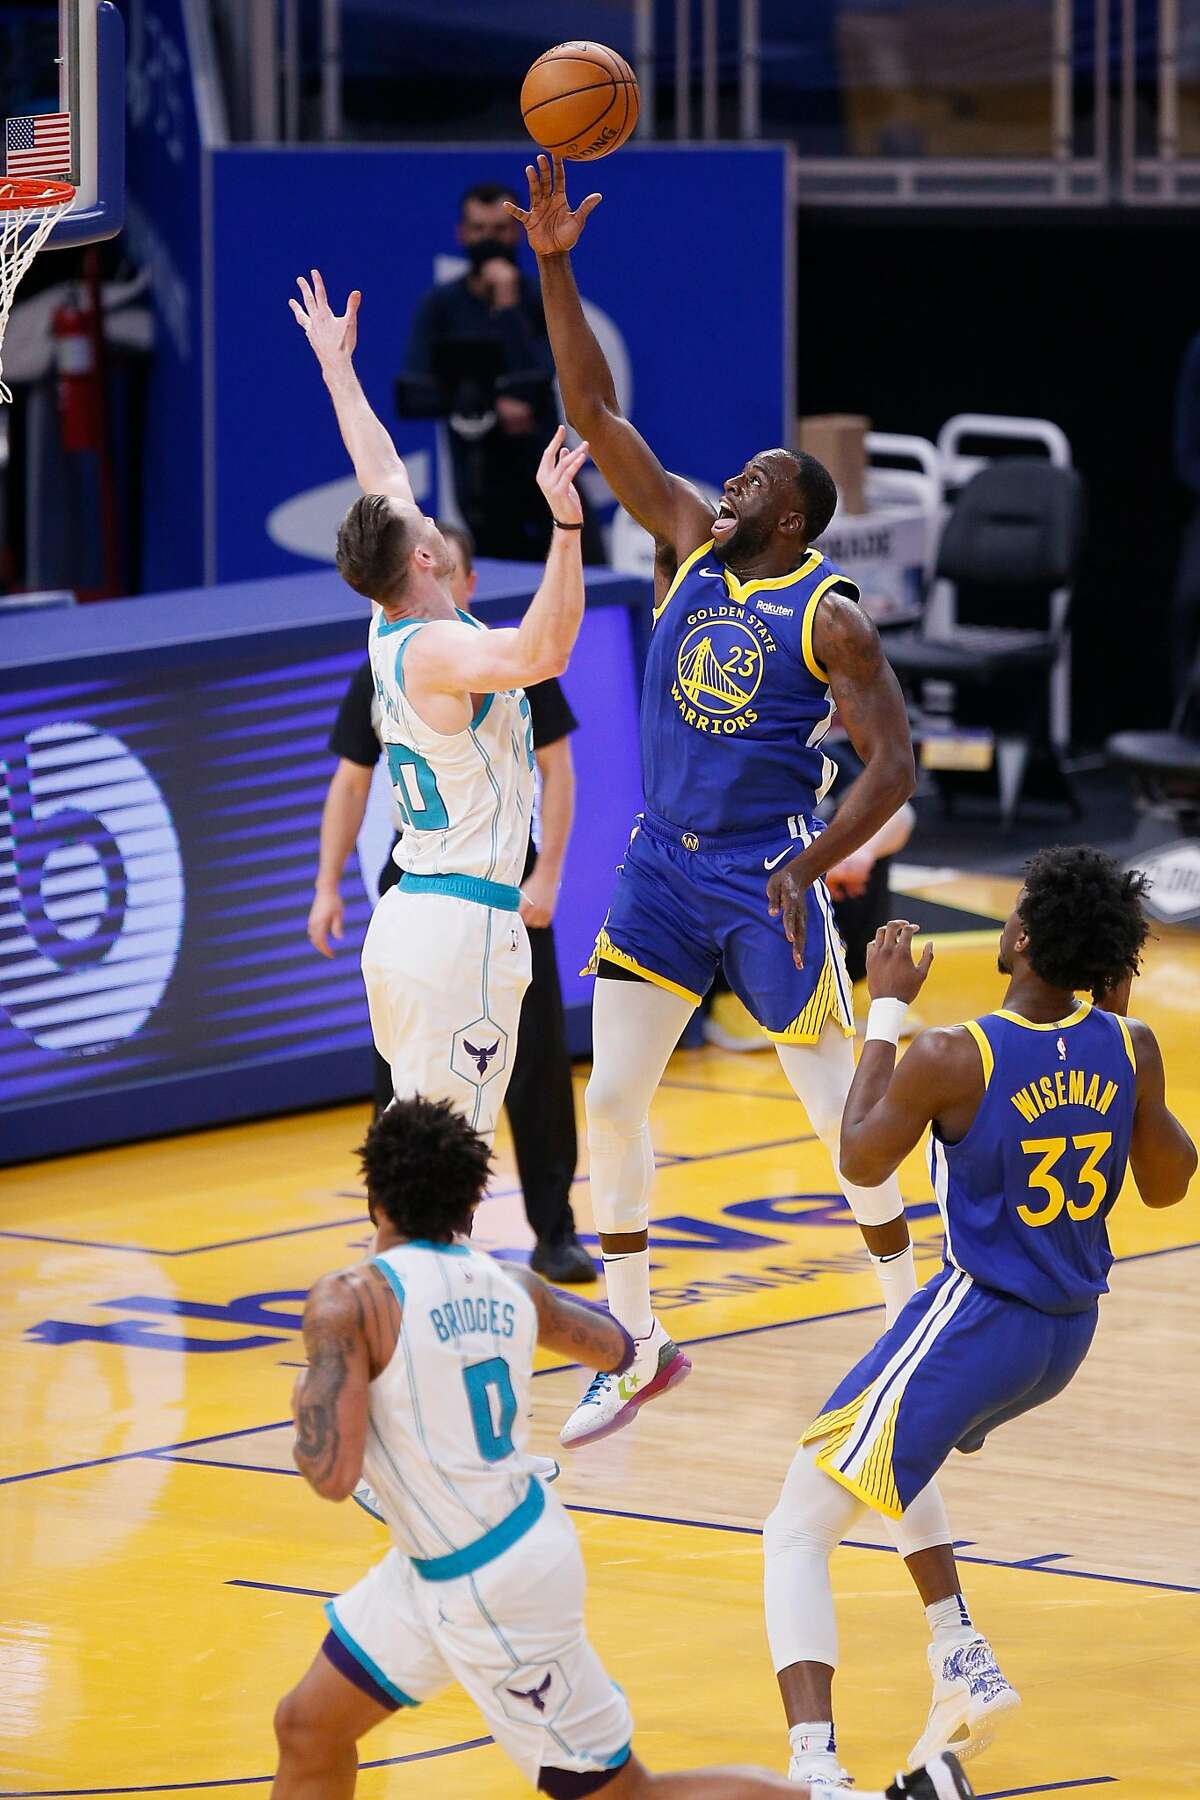 Golden State Warriors forward Draymond Green (23) scores on a layup against Charlotte Hornets forward Gordon Hayward (20) in the first quarter of an NBA game at Chase Center, Friday, Feb. 26, 2021, in San Francisco, Calif.